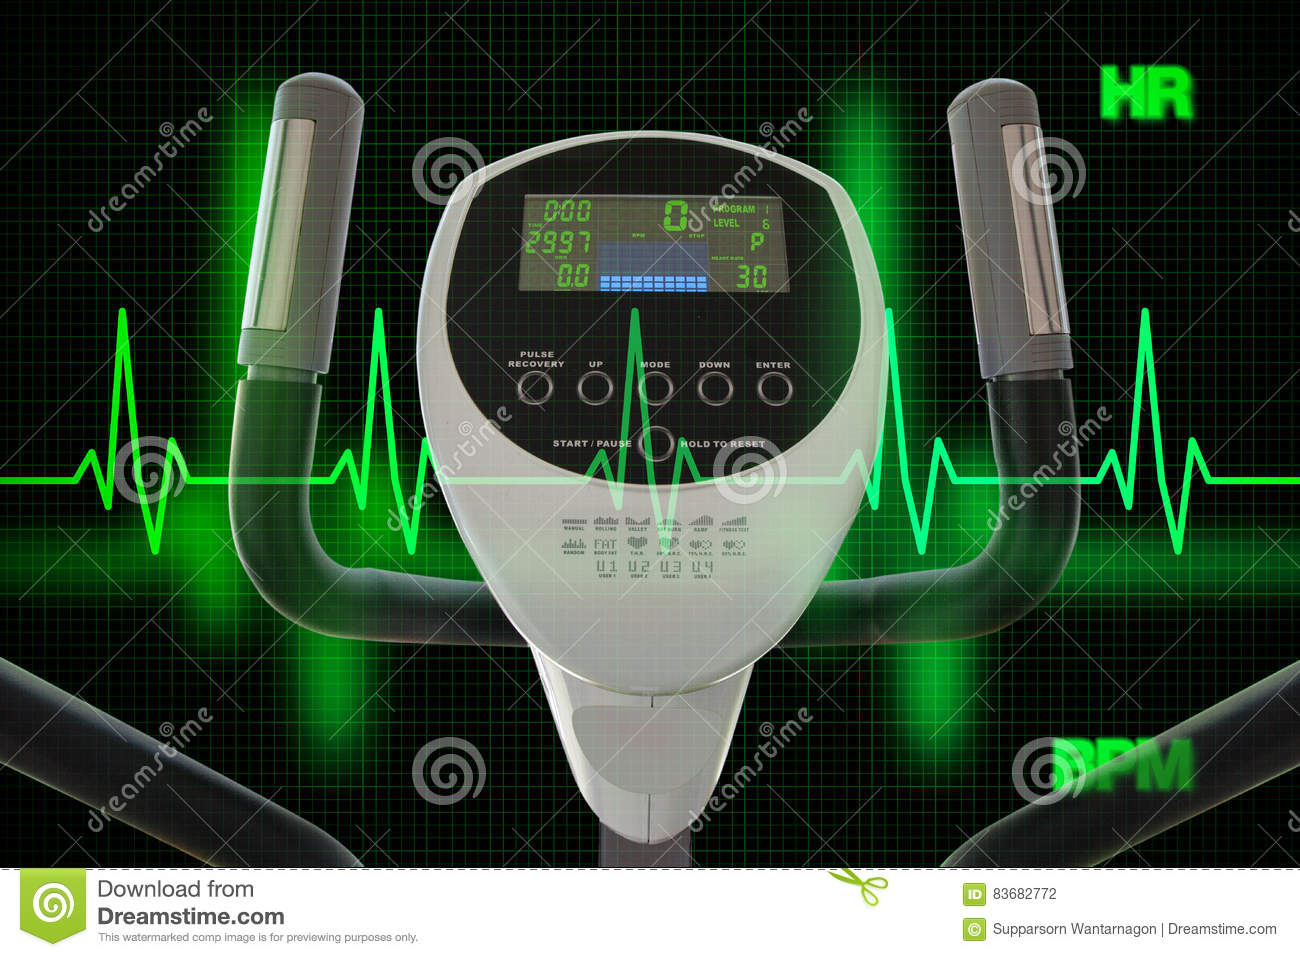 Elliptical Machine for Exercising with Heart Beat Diagram or Car